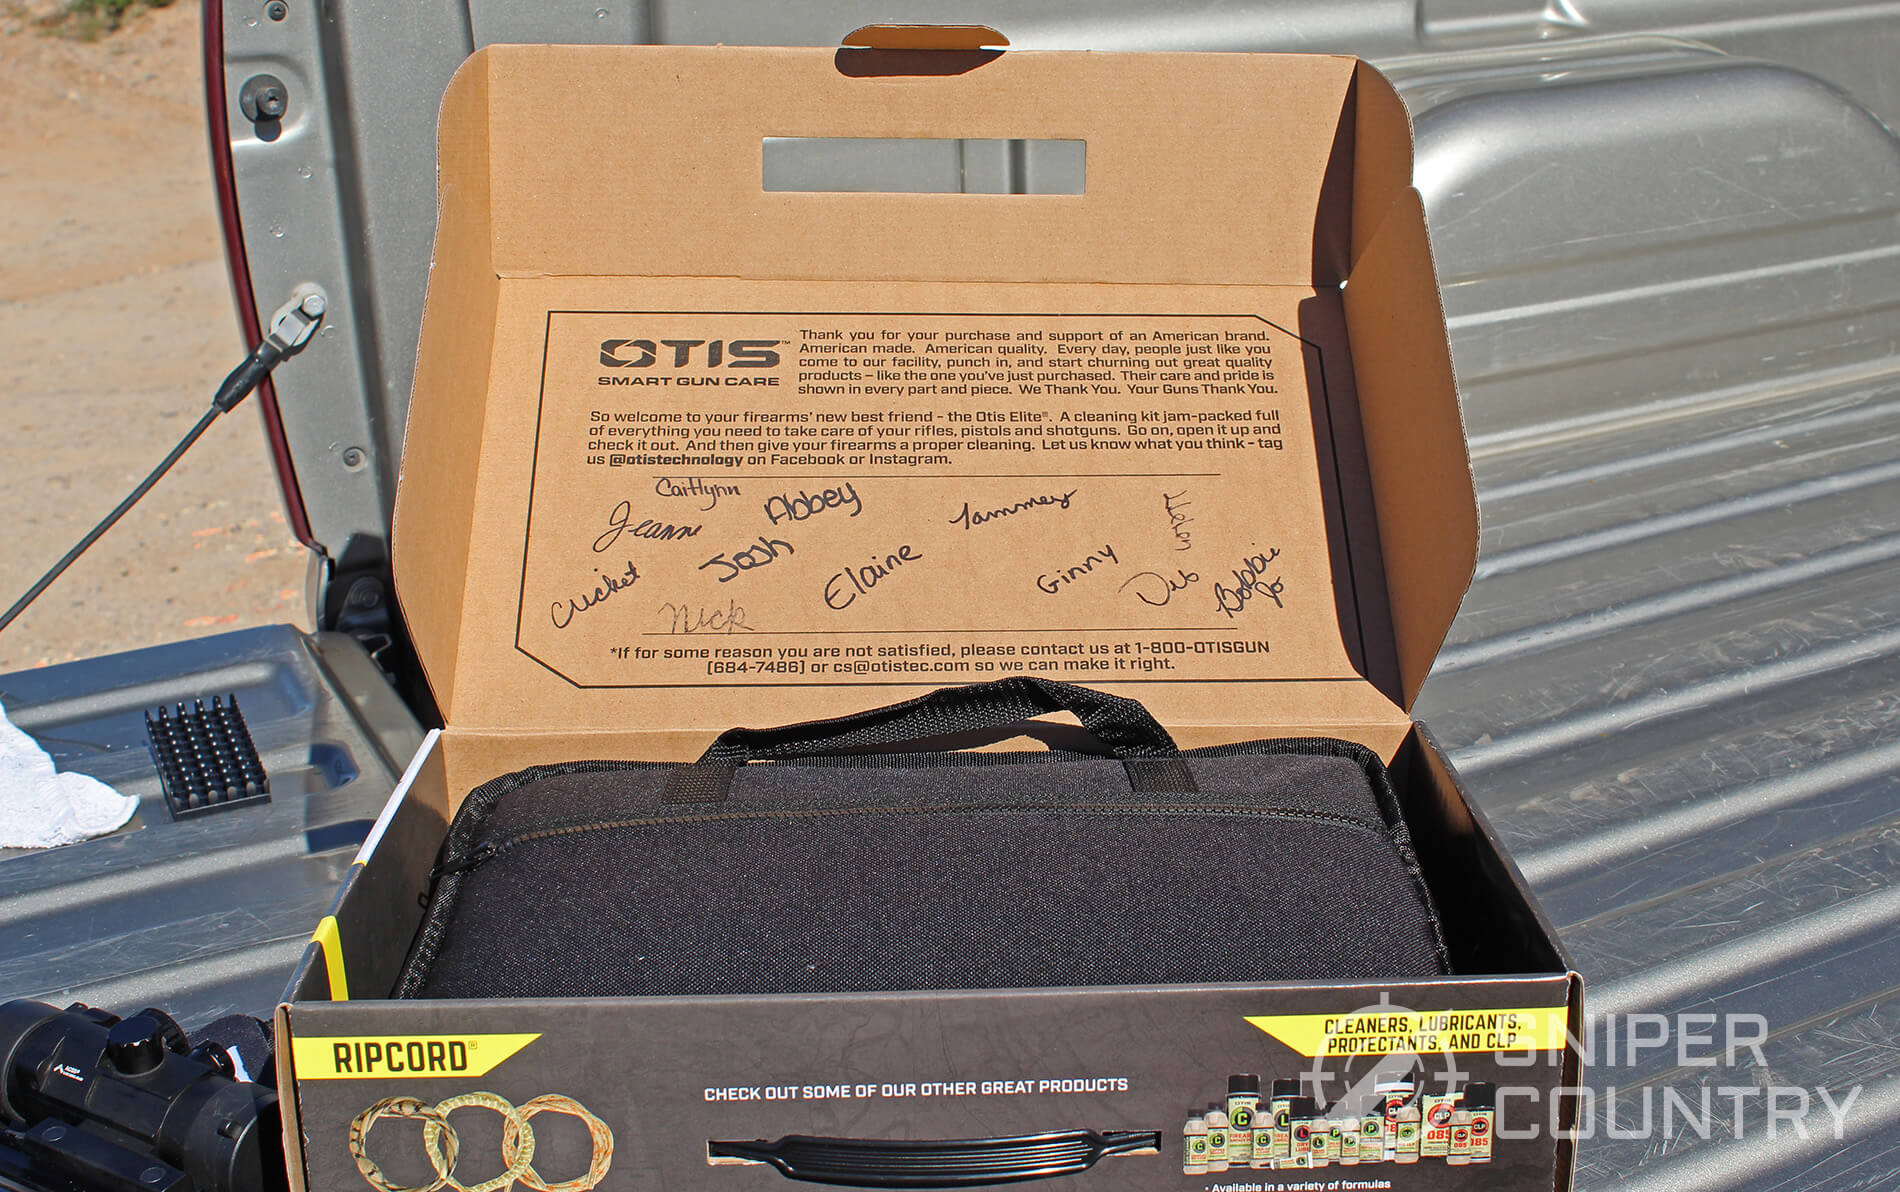 Otis Elite Open box with signatures